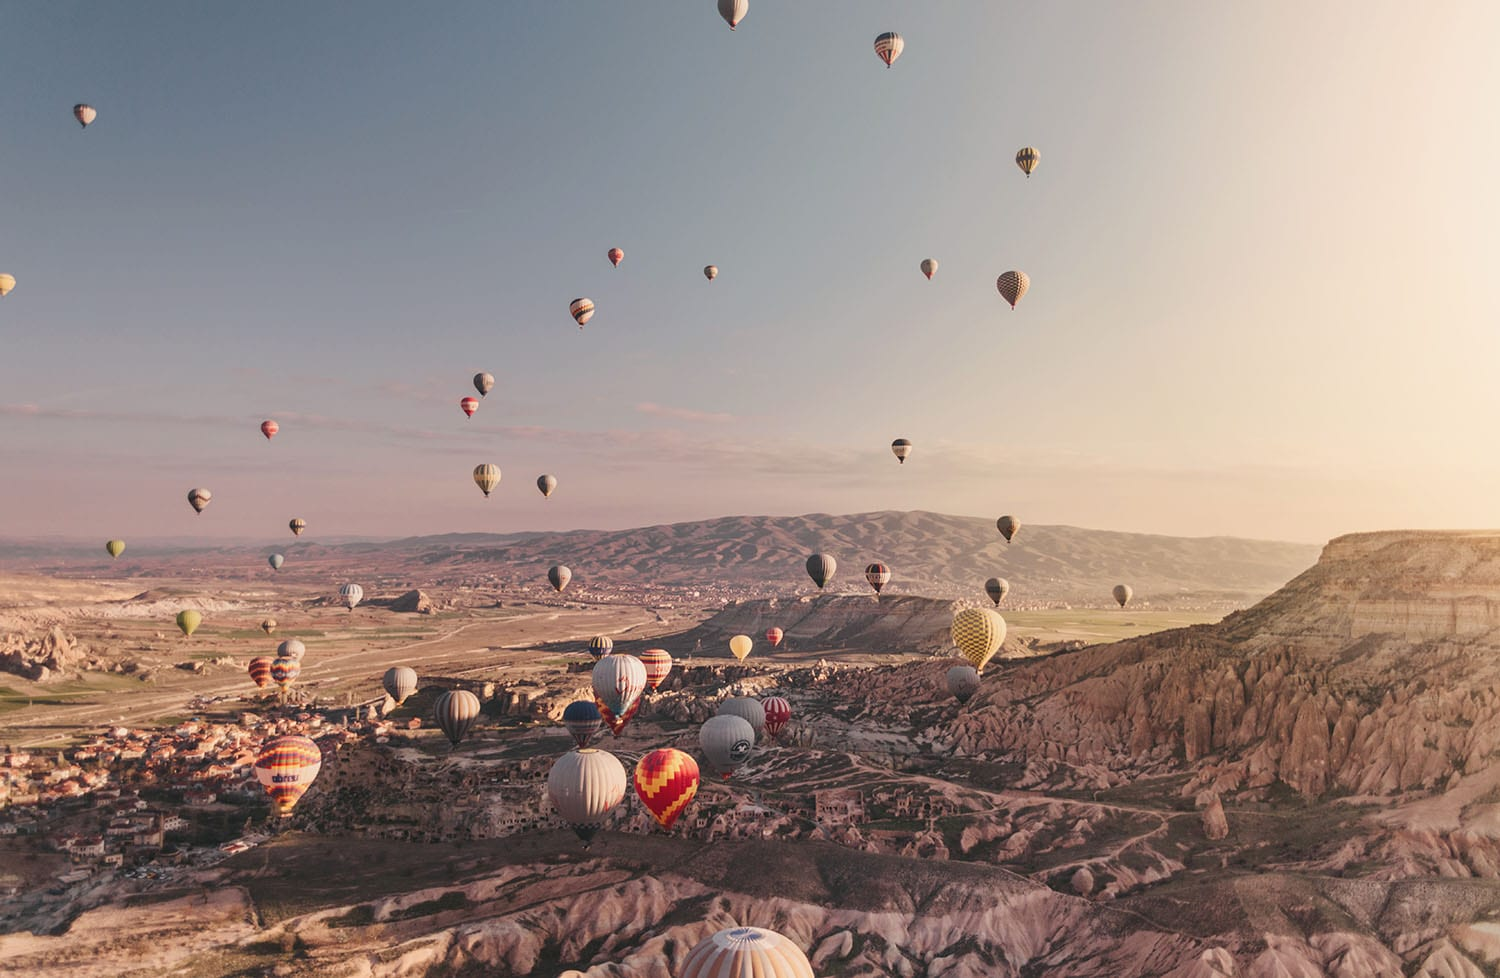 Surreal view: Hot air balloons in beautiful sunrise in Cappadocia, Turkey